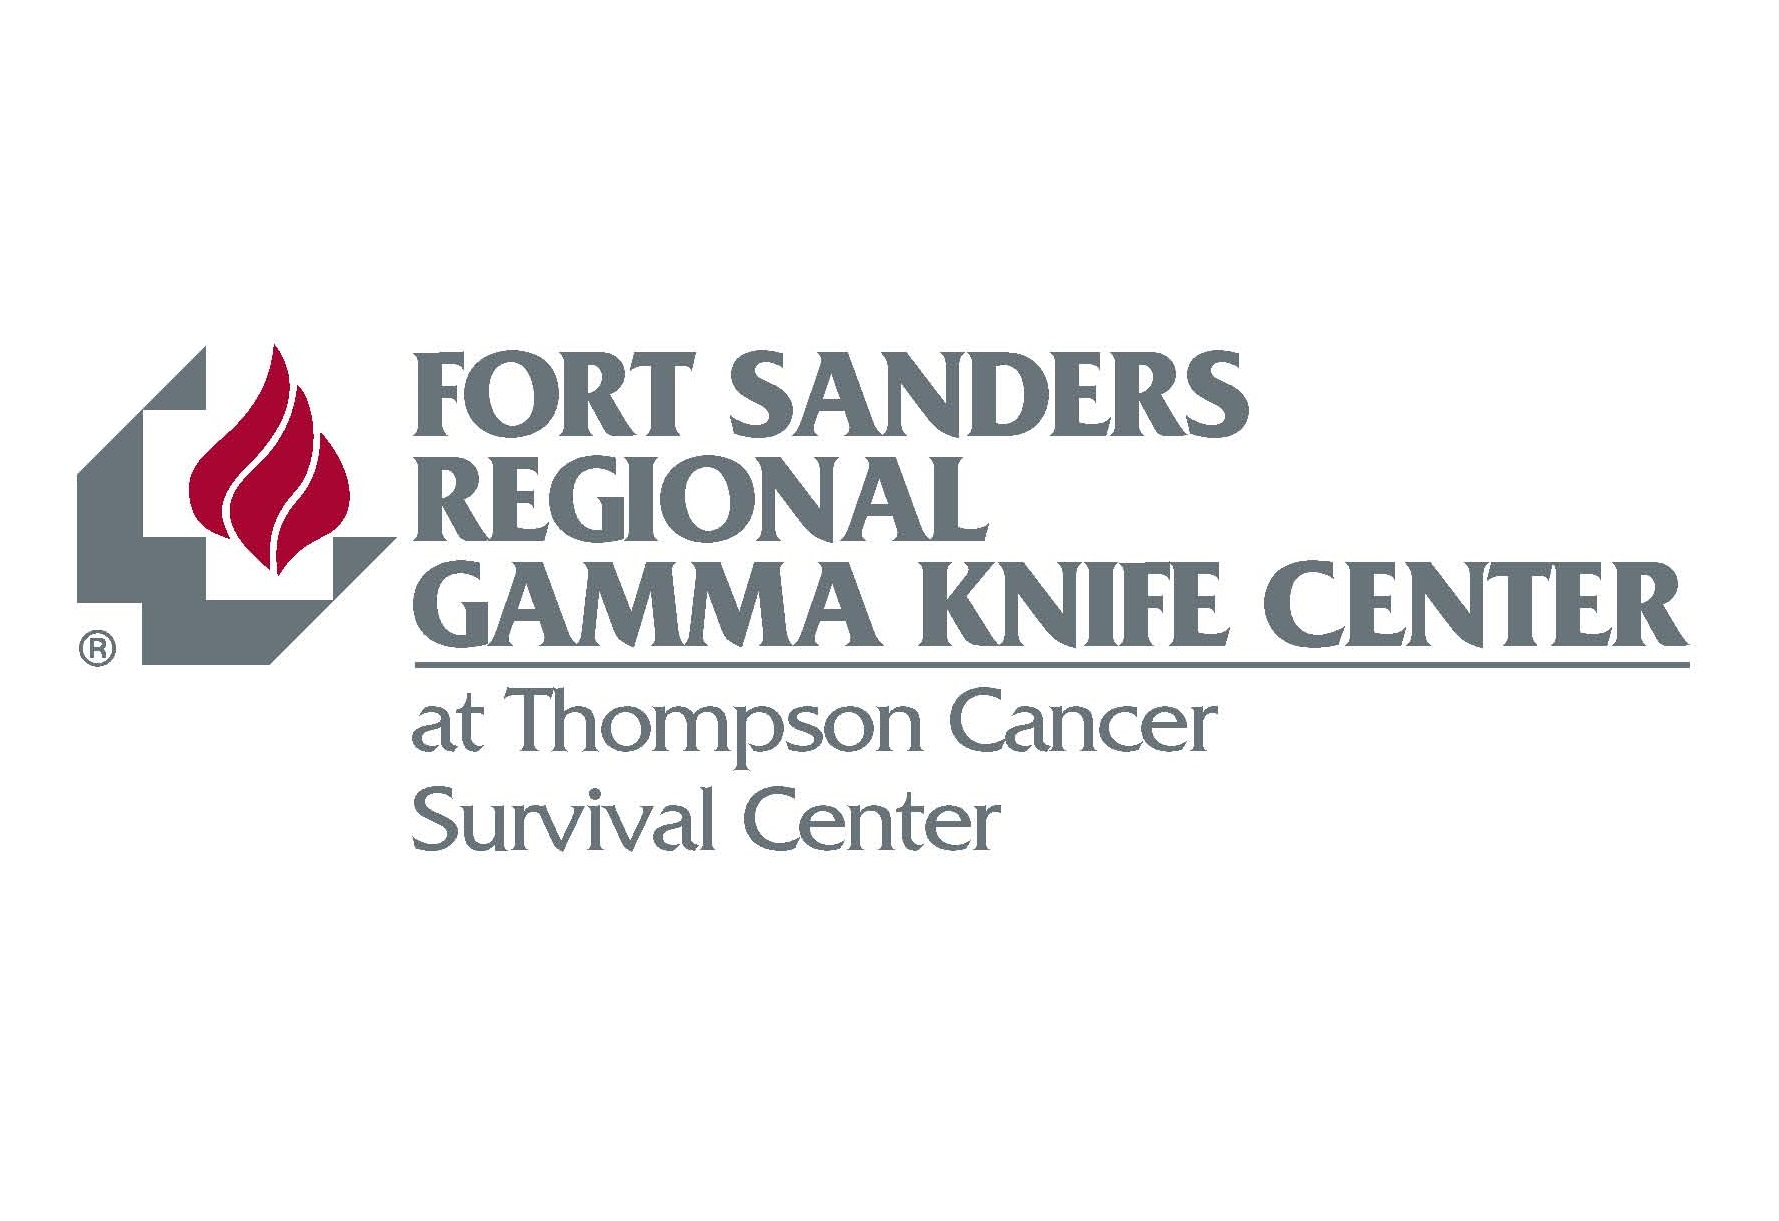 Gamma Knife Logo